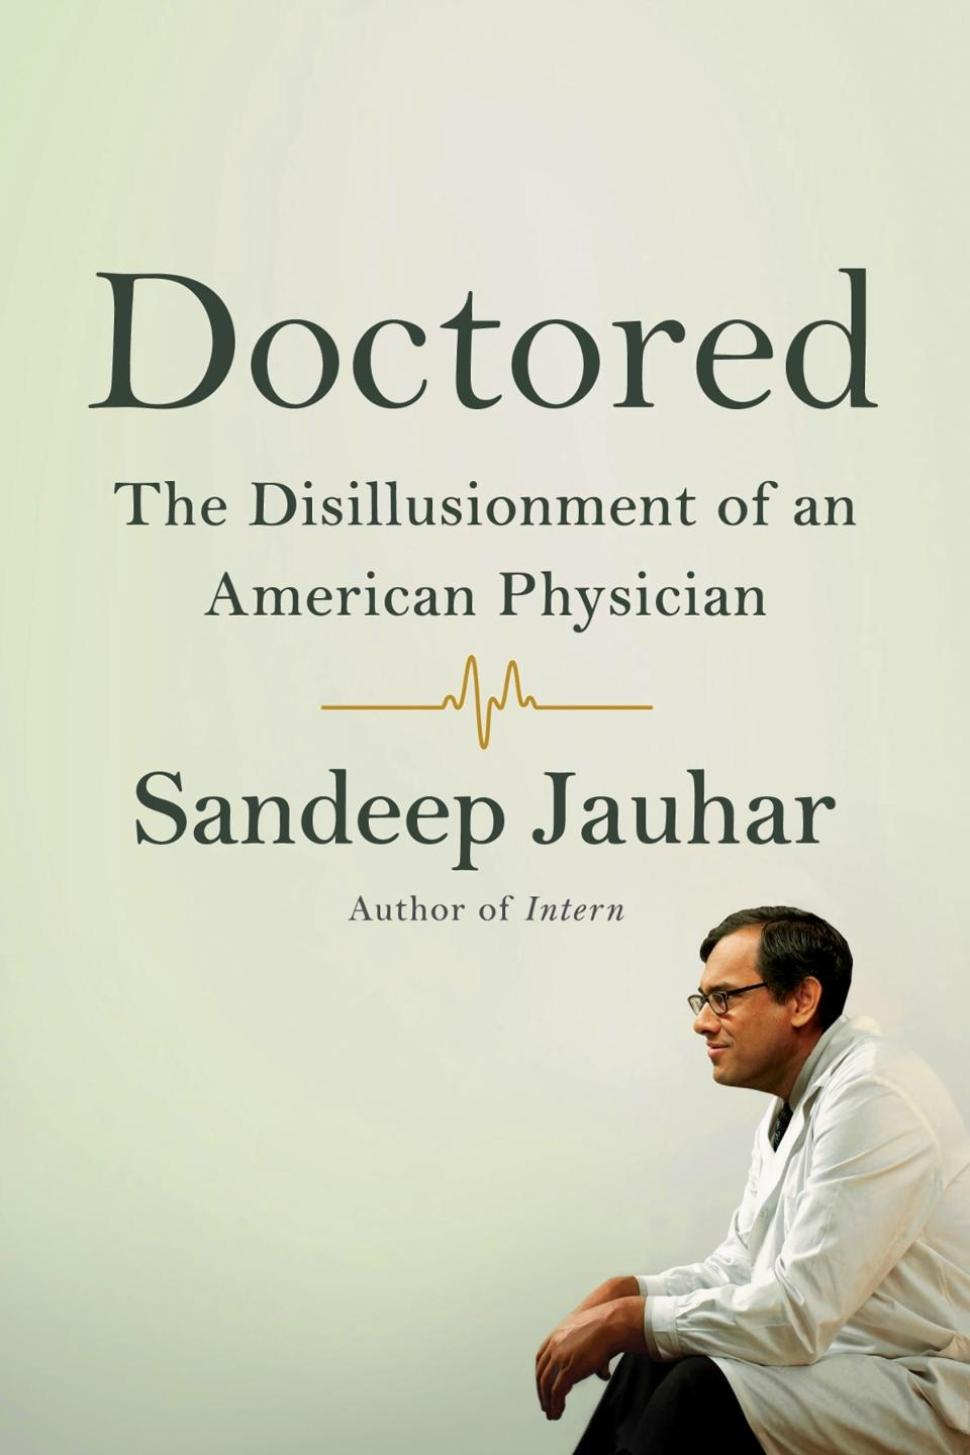 Dr. Sandeep Jauhar offers a less-than-flattering look at the state of American medicine.